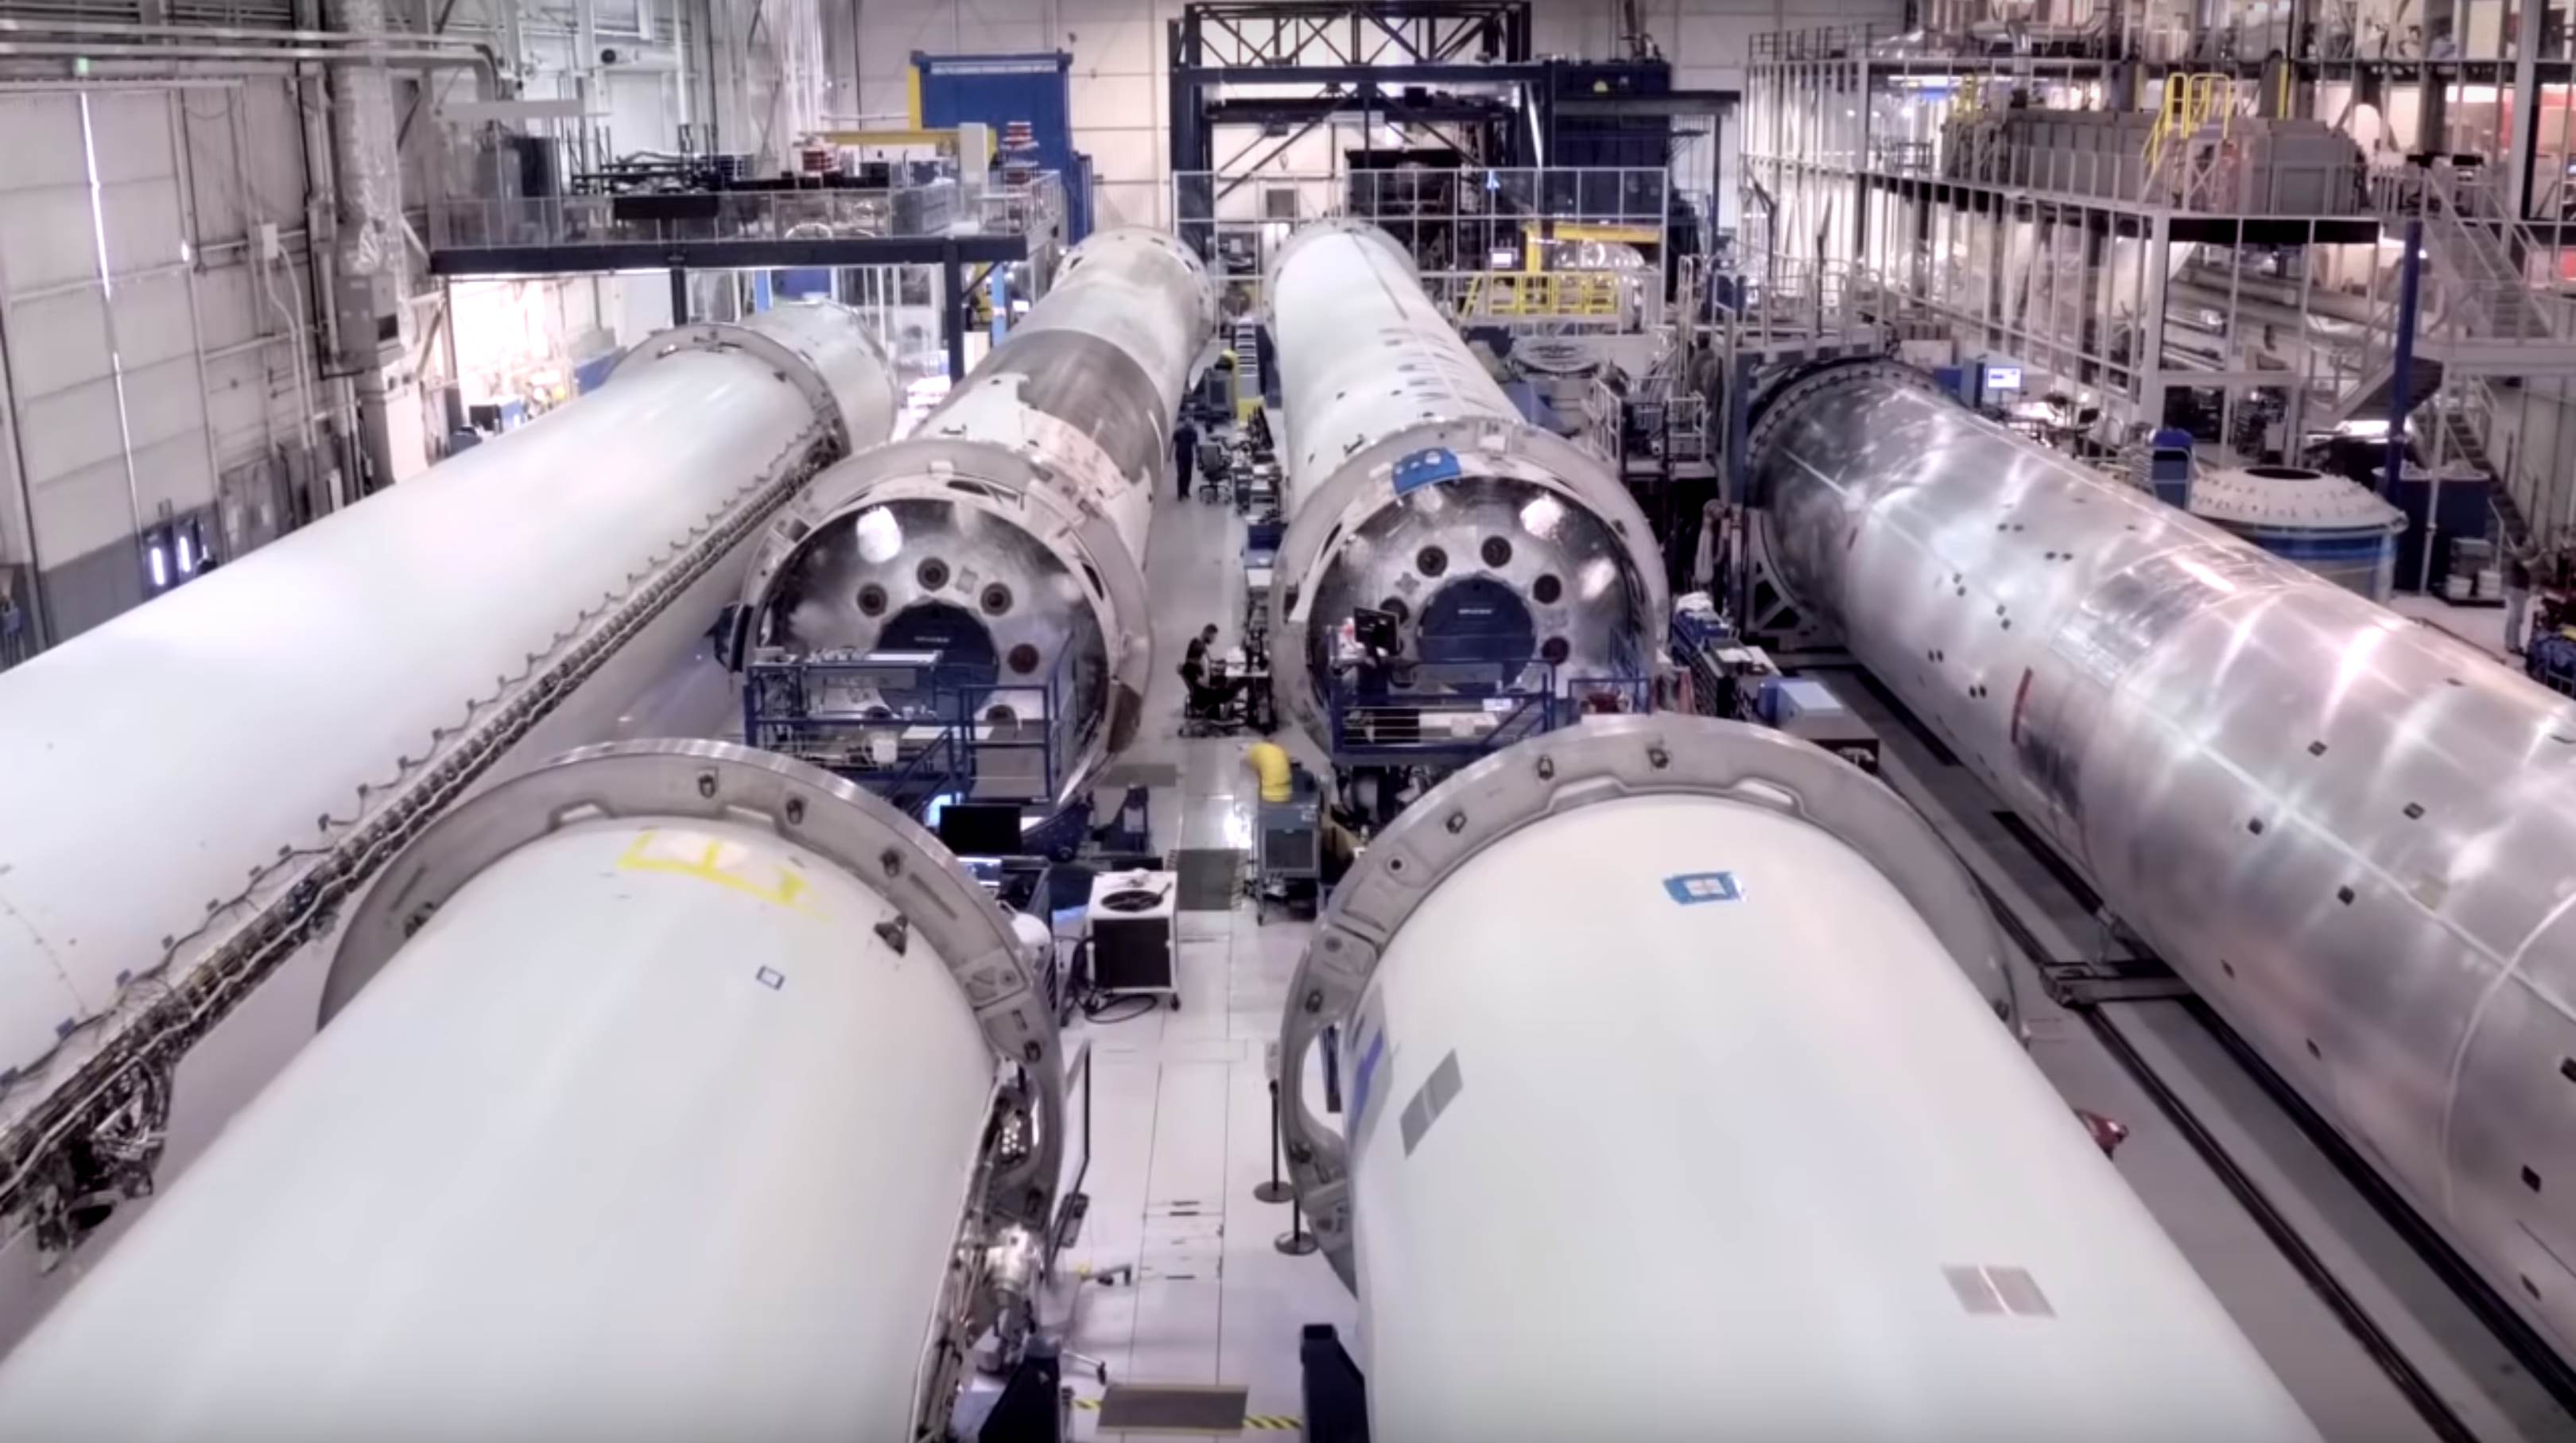 SpaceX fits Starship prototype with tank bulkheads as hop test pad progresses